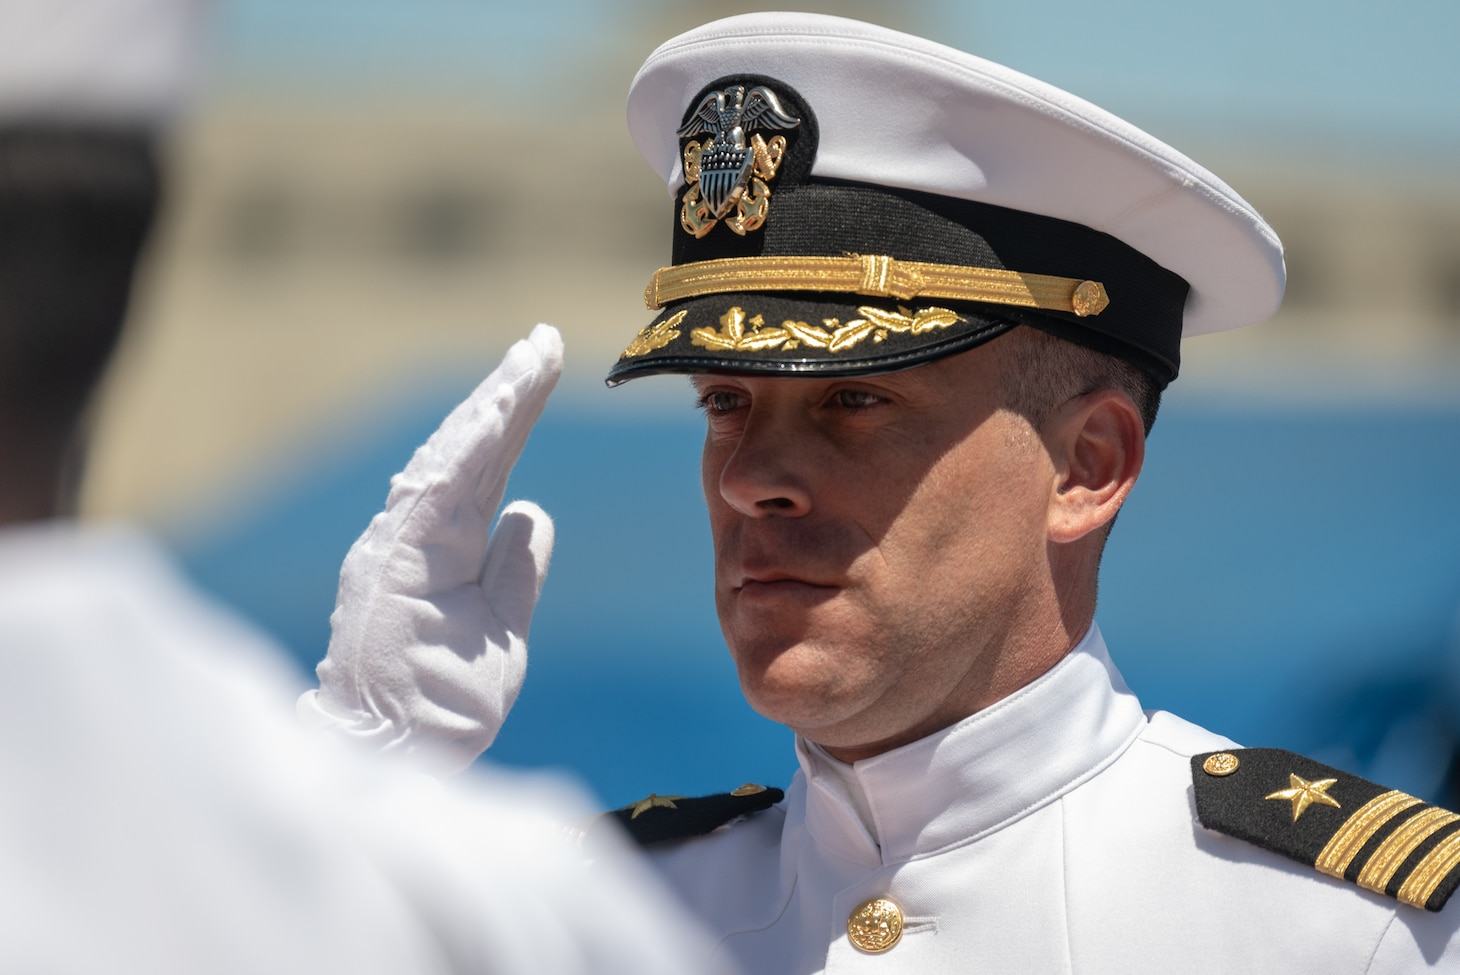 JOINT BASE PEARL HARBOR-HICKAM, Hawaii (May 31, 2019) Cmdr. Matthew Lewis is piped ashore after a change of command of the Virginia-class fast-attack submarine USS North Carolina (SSN 777)at Joint Base Pearl Harbor-Hickam, Hawaii, May 31. Cmdr. Matthew Lewis, commanding officer of North Carolina, was relieved by Cmdr. Michael Fisher, after more than 30 months in command of the vessel. (U.S. Navy Photo by Mass Communication Specialist 1st Class Daniel Hinton)